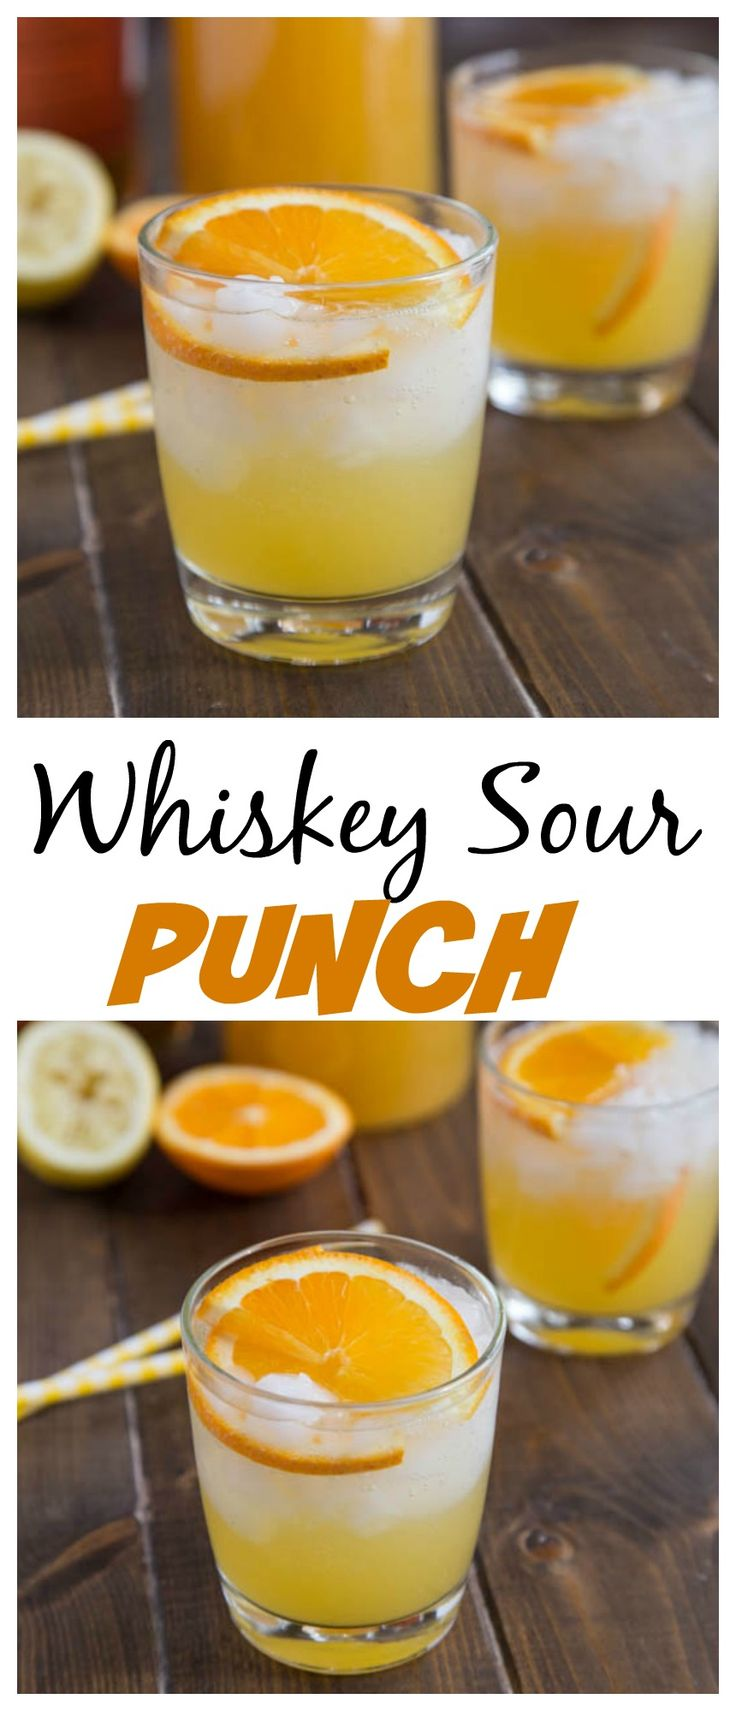 Whiskey Sour Punch - orange juice, lemon juice and bourbon some together for a fizzy and fun punch.  Great for get togethers, and you can even make it ahead!